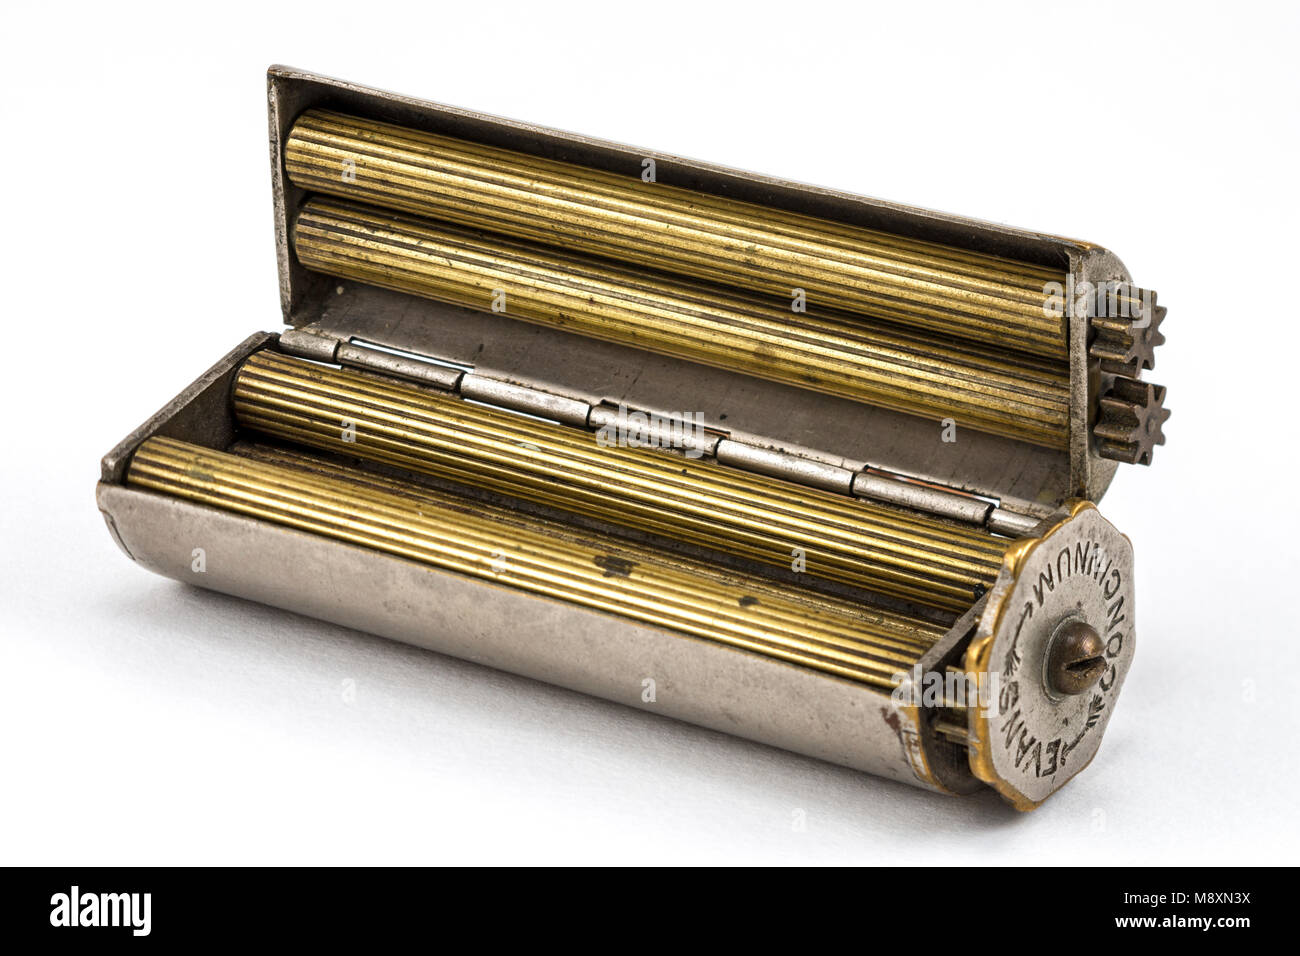 An Evans Patent Concinnum Machine, a vintage cigarette rolling device.  Internal view, showing the brass rollers. Stock Photo